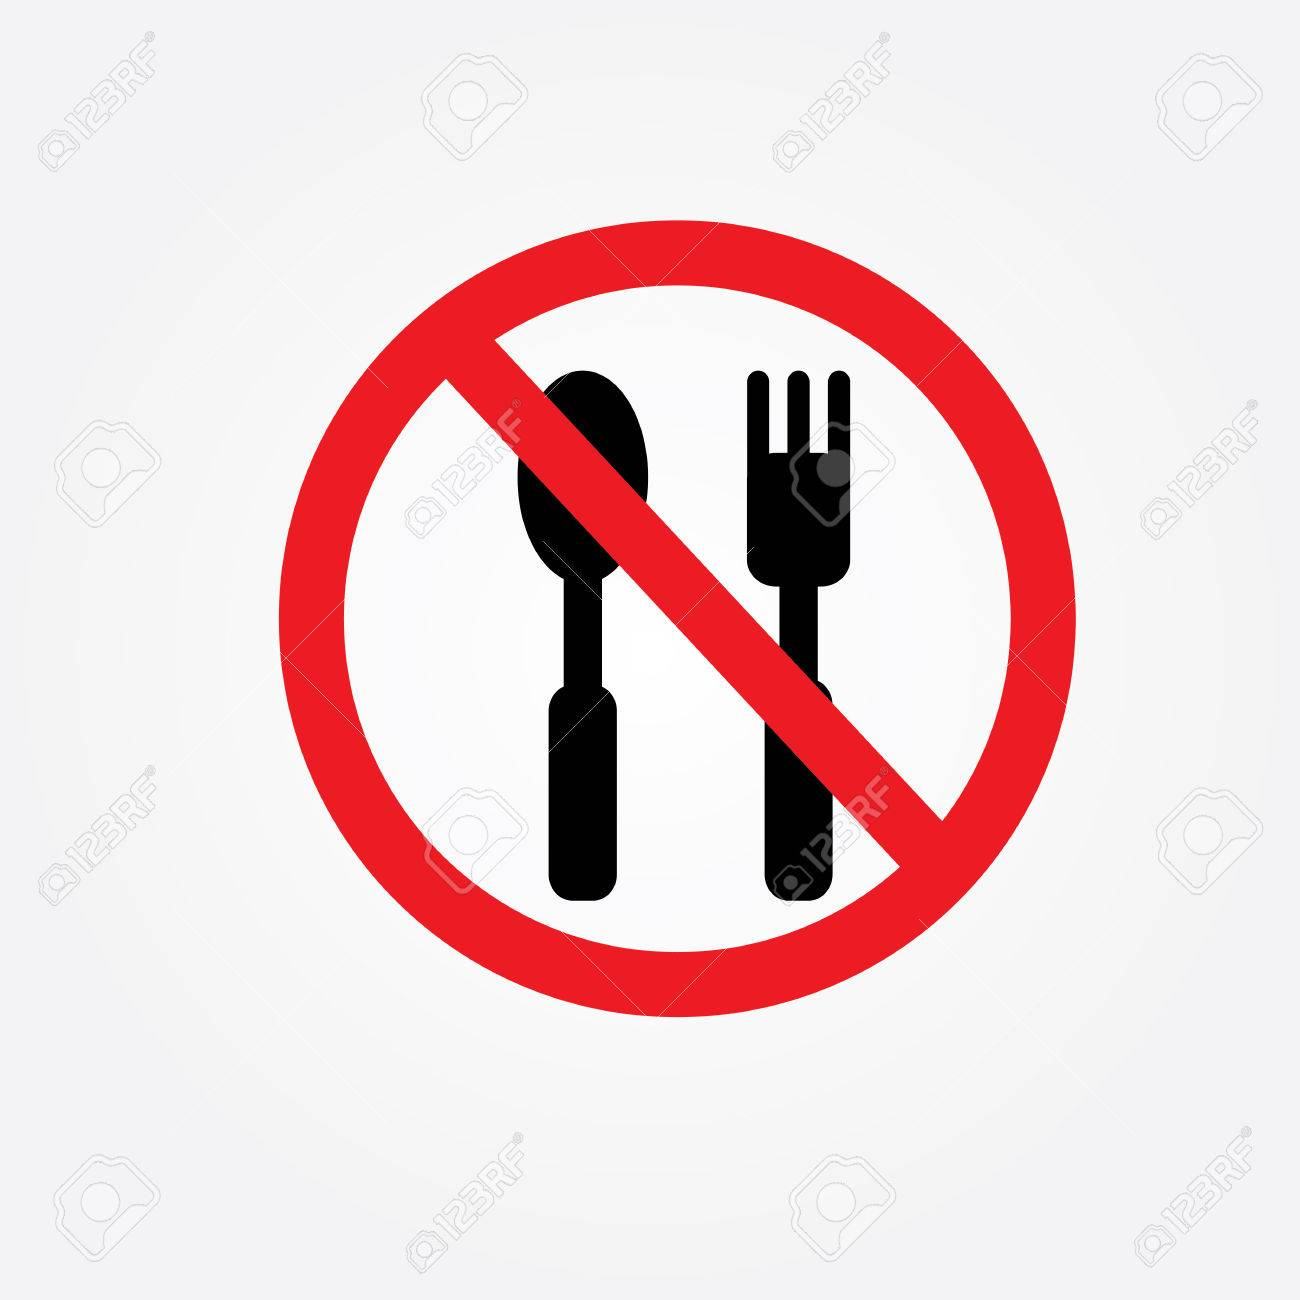 No eating vector sign,no food or drink allowed vector.